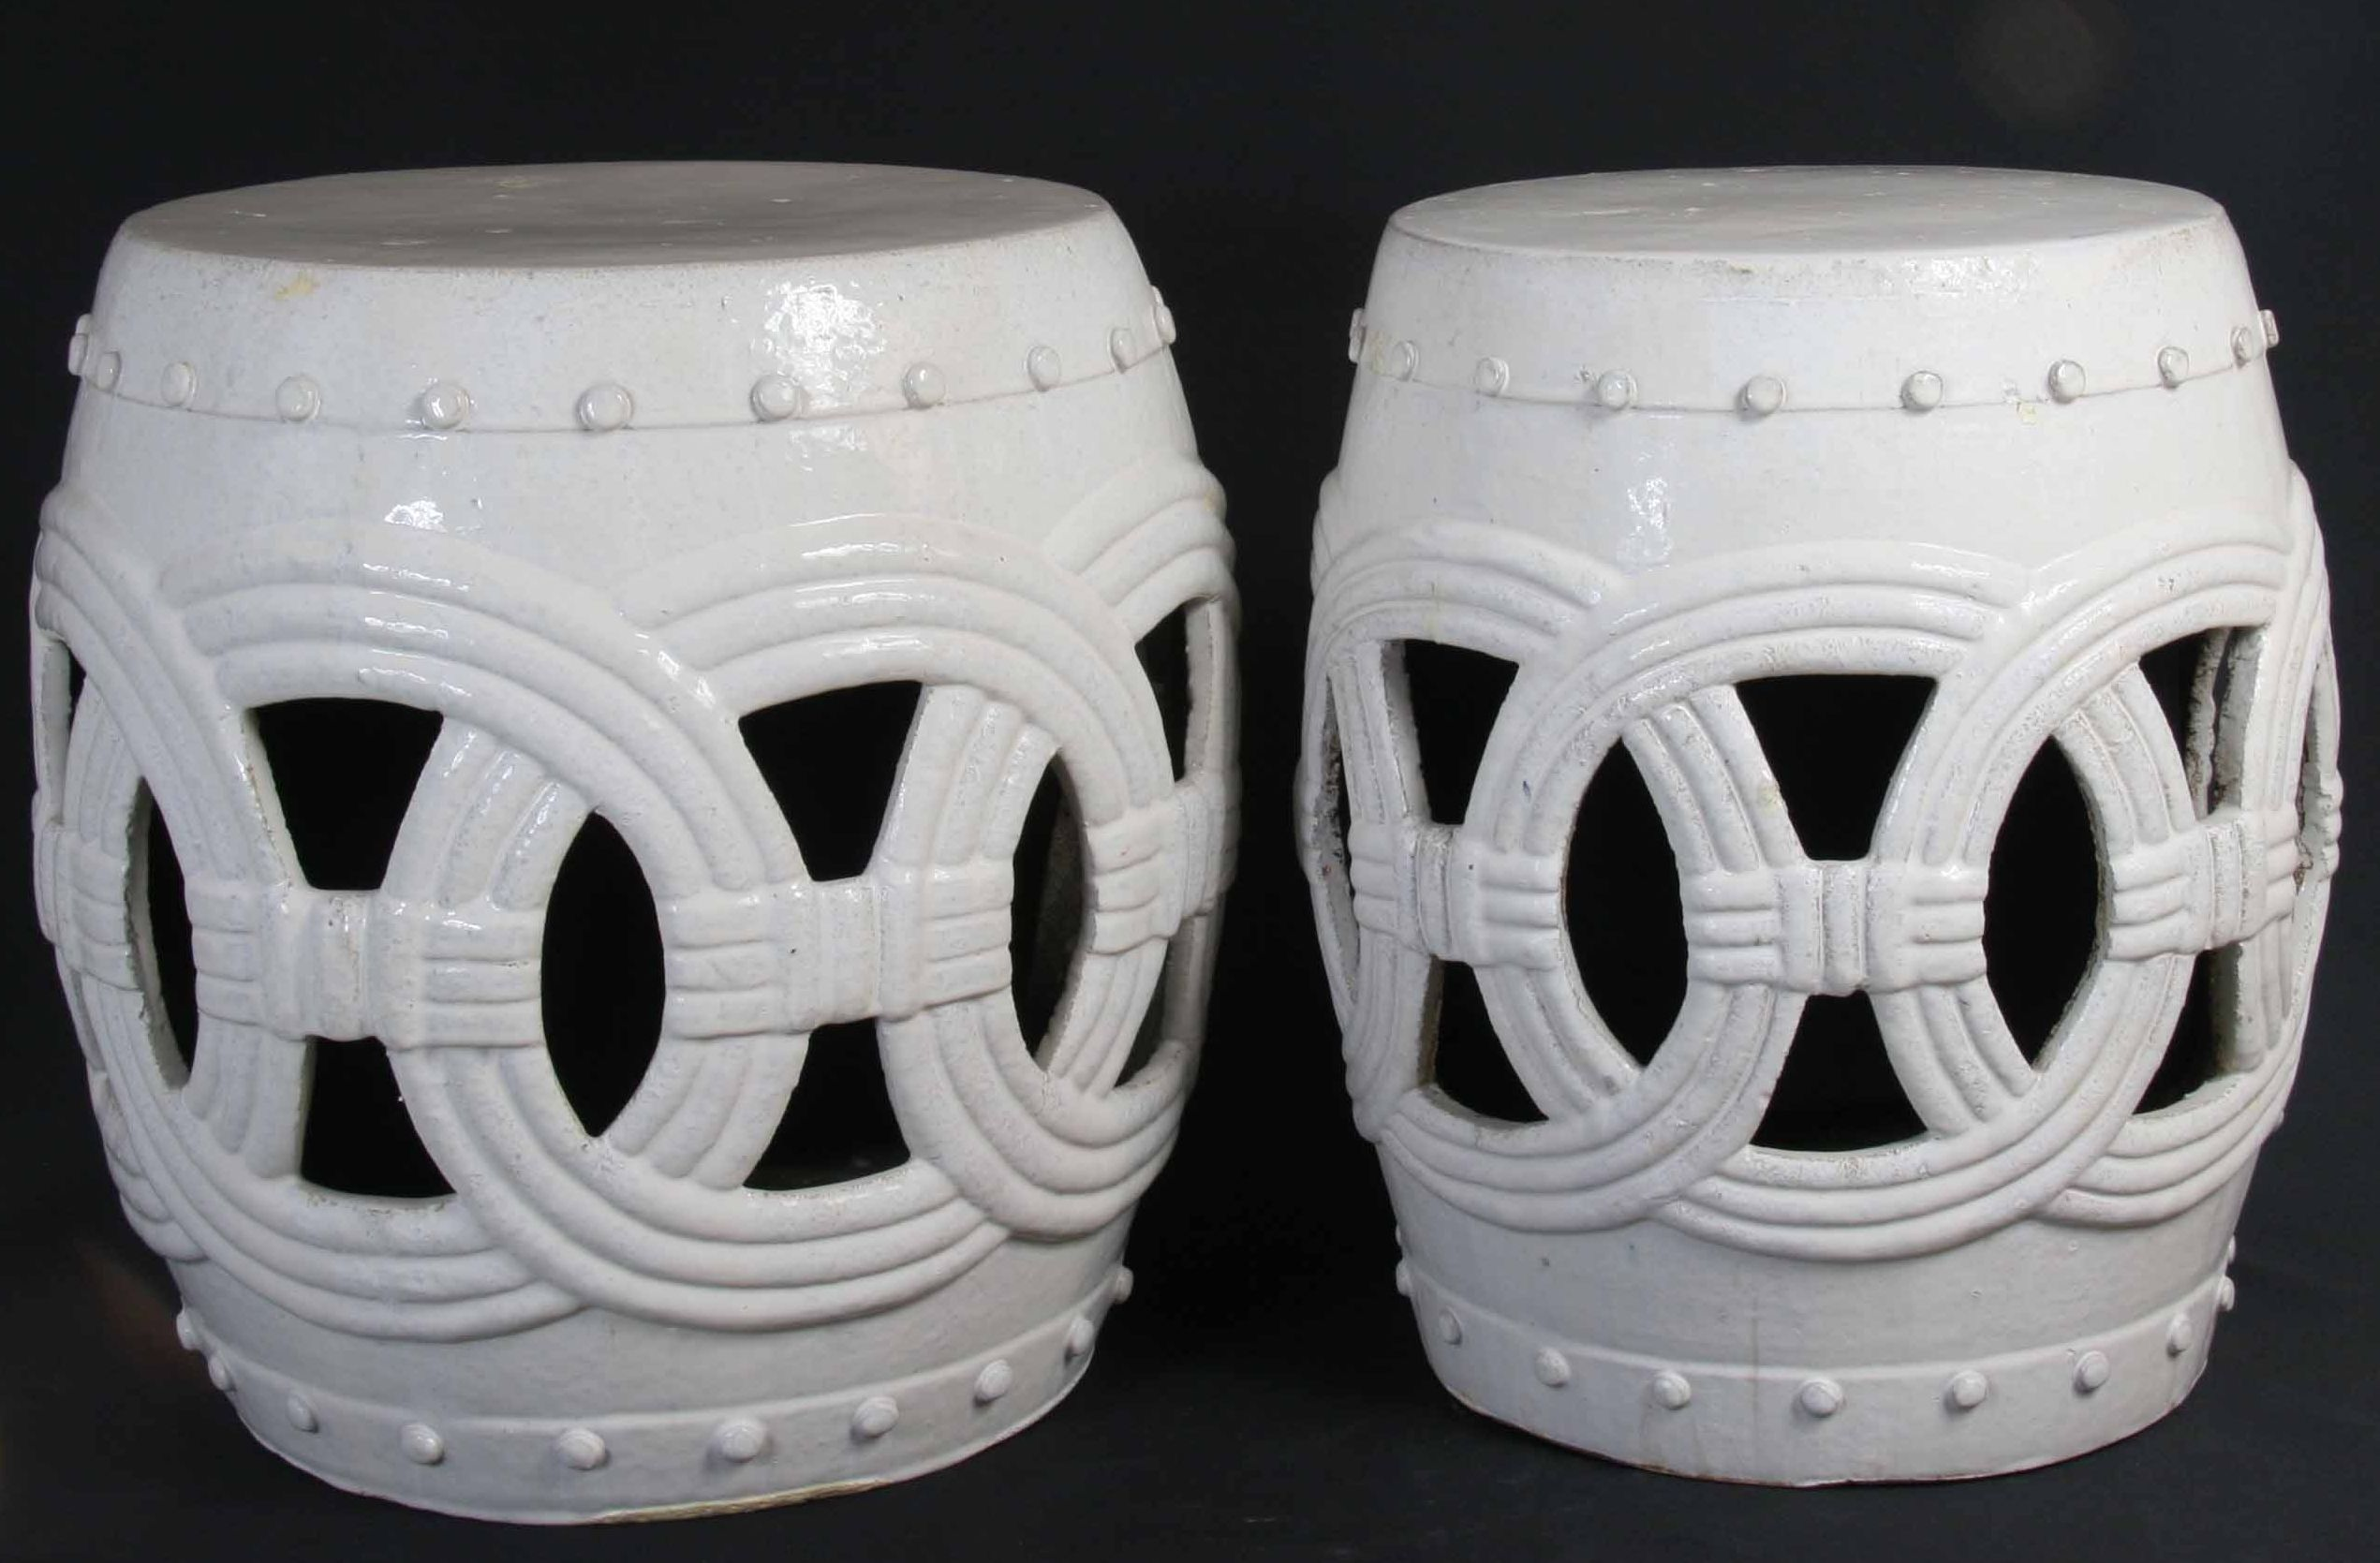 Large Circle Garden Stool In White Also Available As Small Circle Garden  Stool In White 20